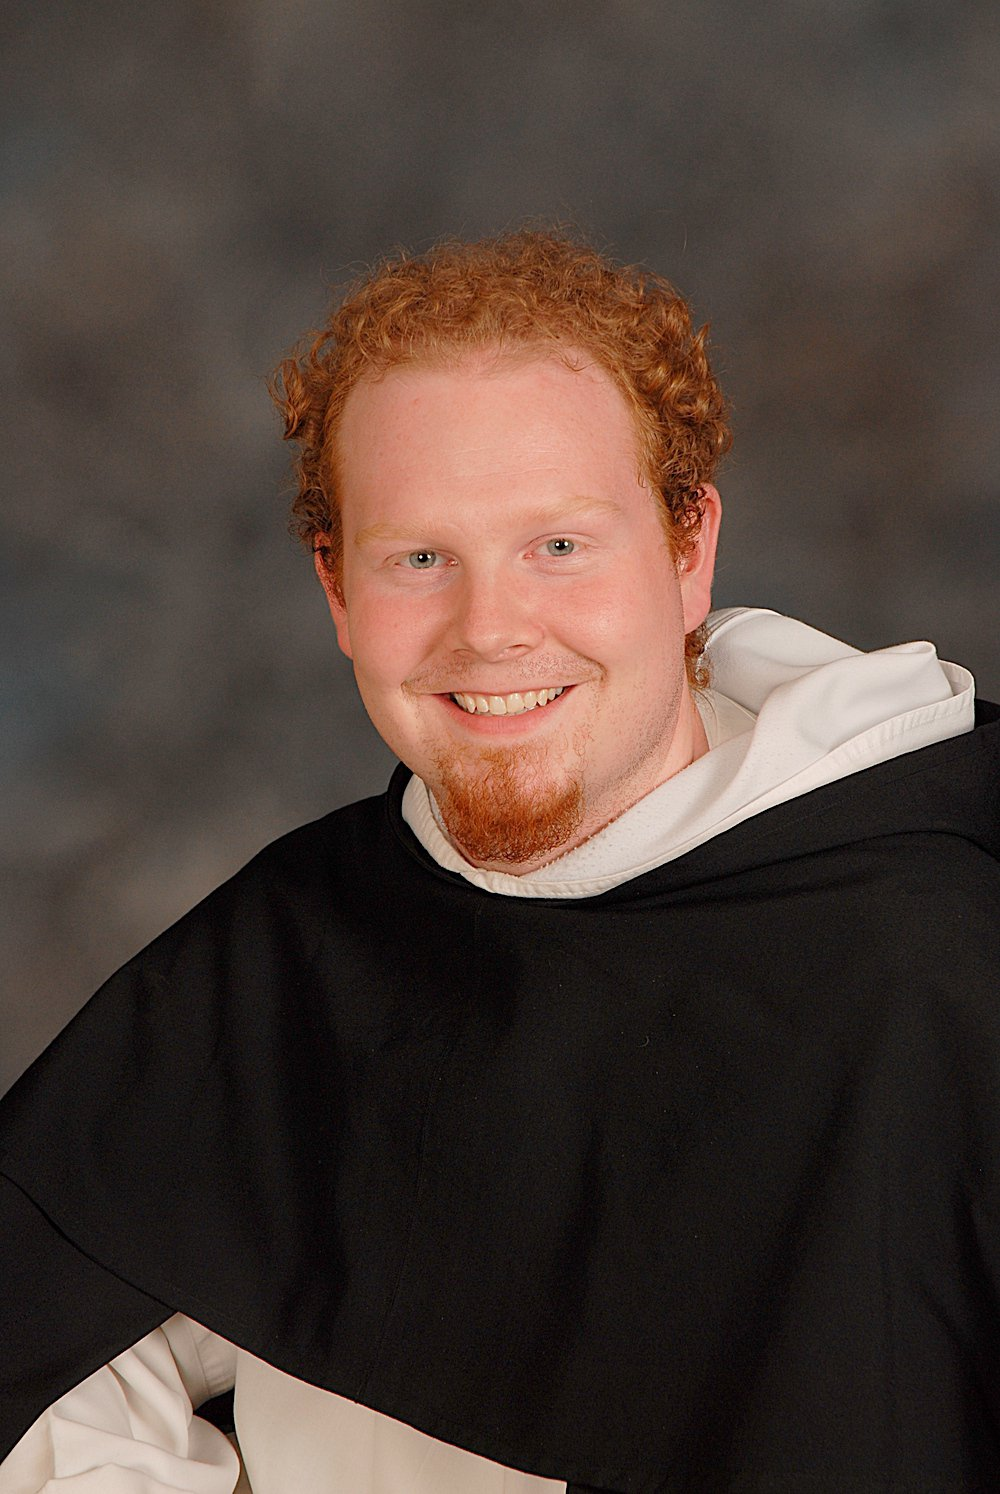 fr. Jude McPeak, o.p. - promoter of vocations